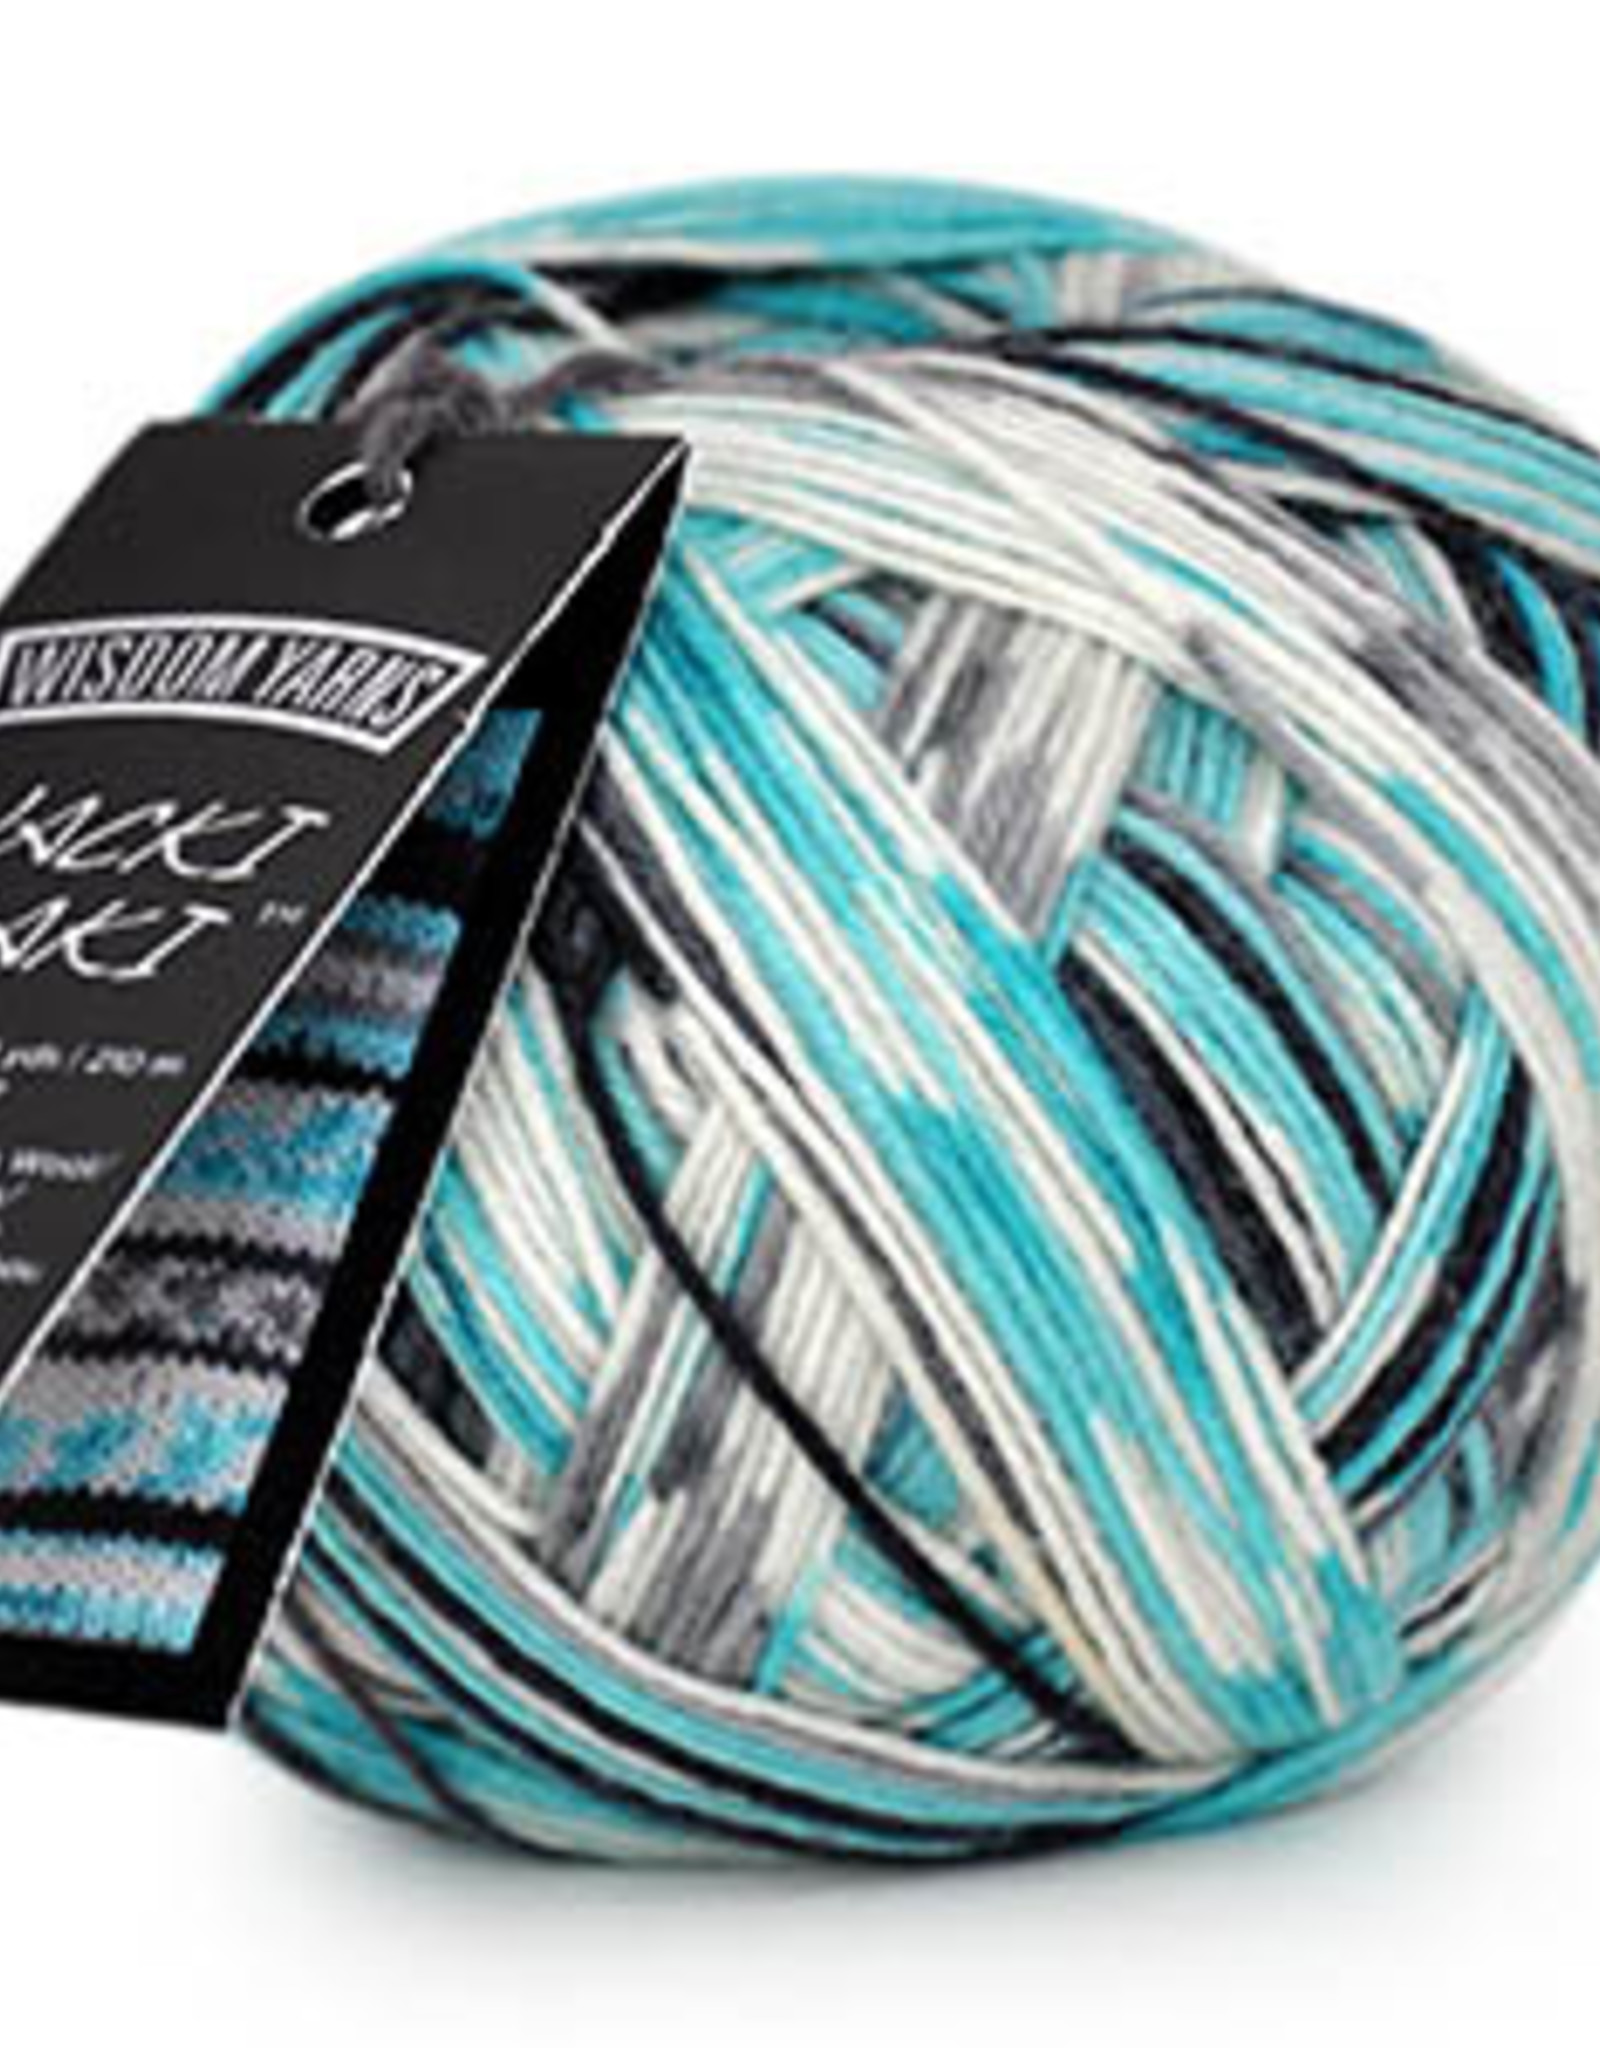 Wisdom Yarns Wacki Saki  - Lace Weight